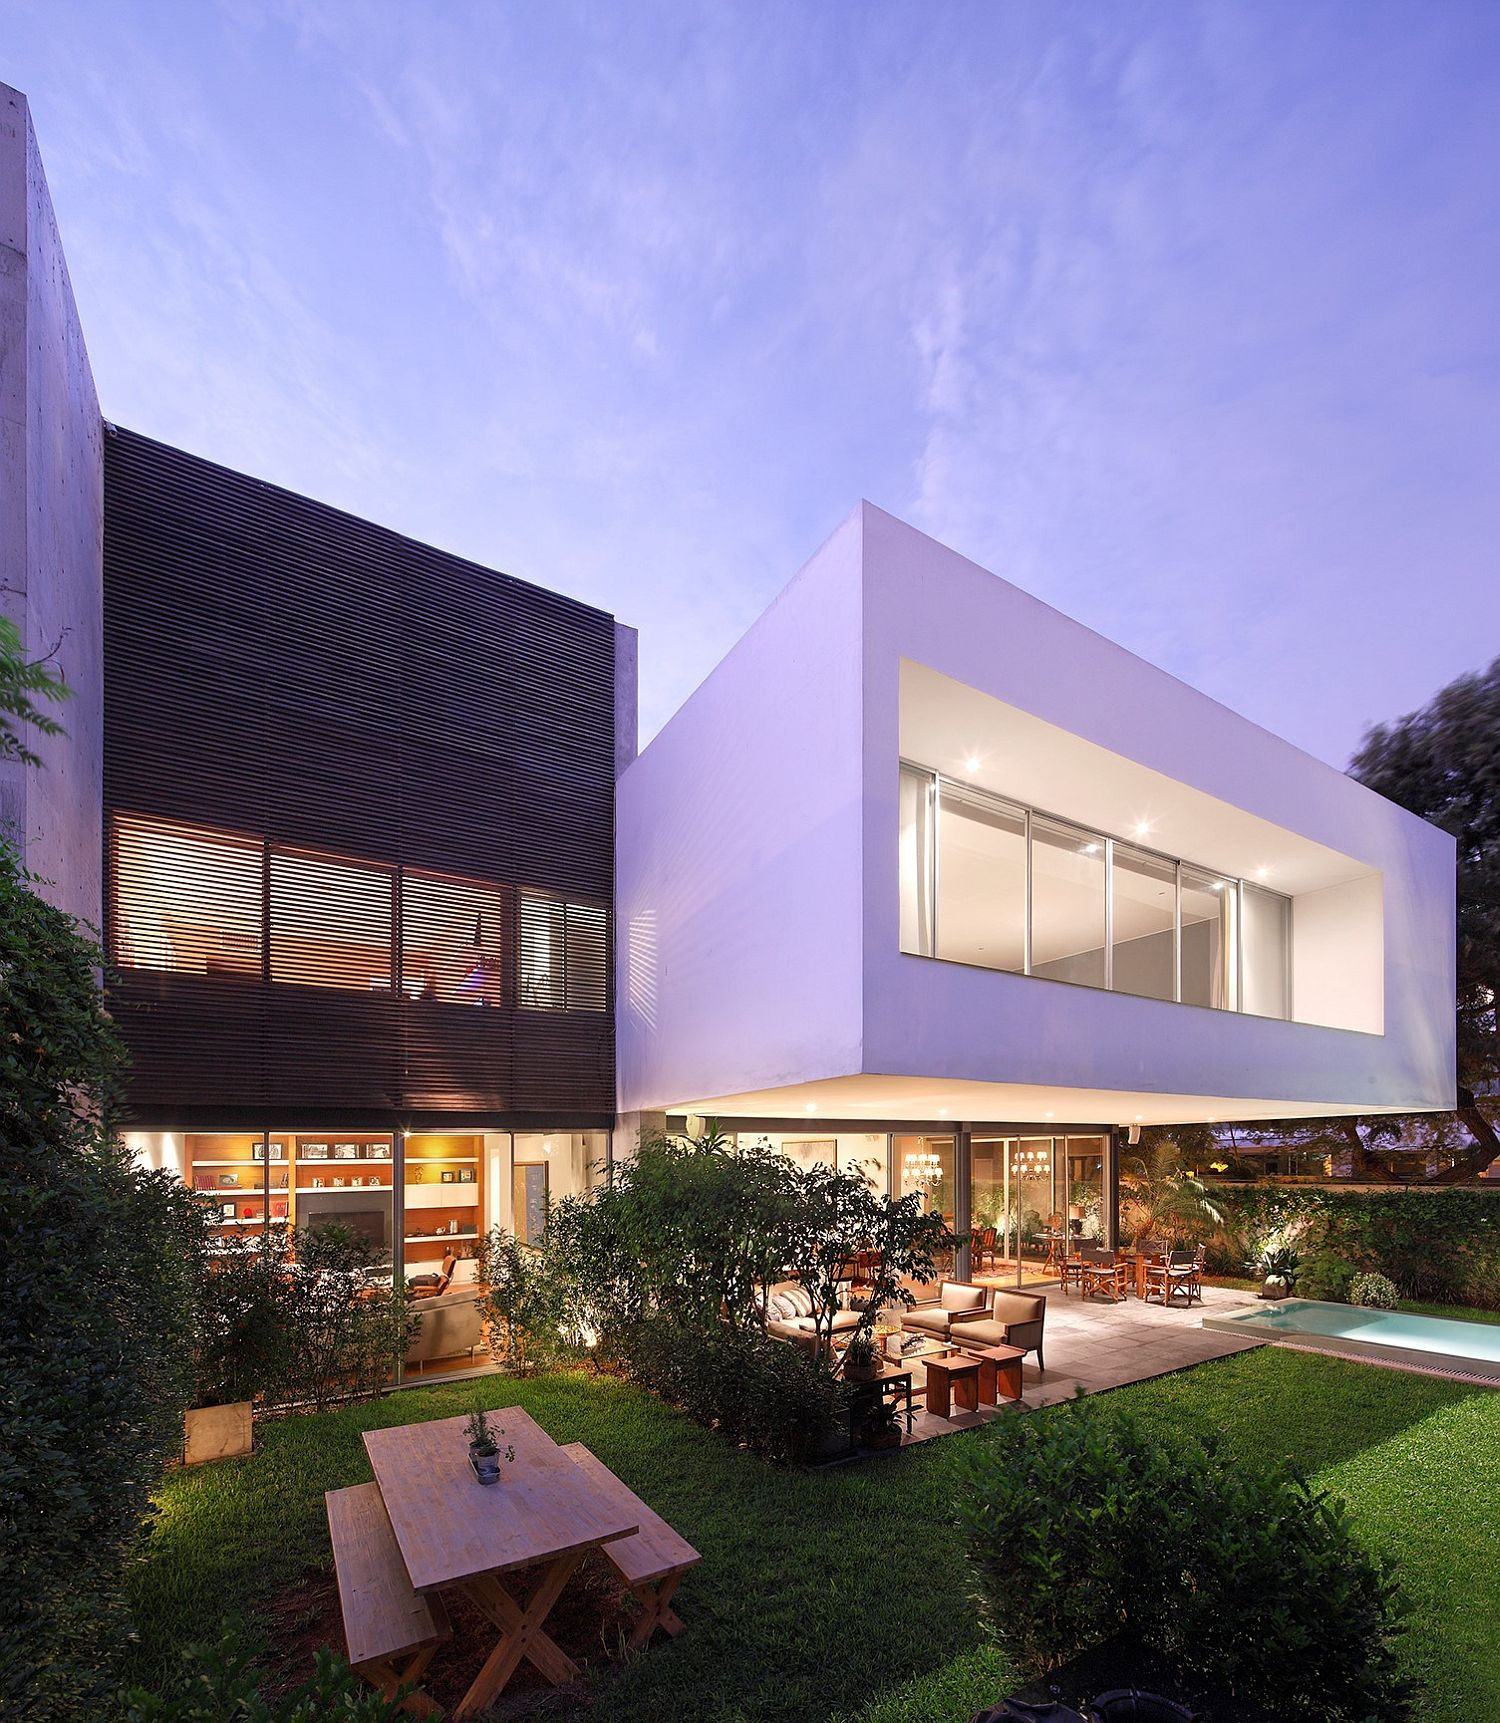 A Study in Crisp Contemporary Design: Exquisite House M in Lima